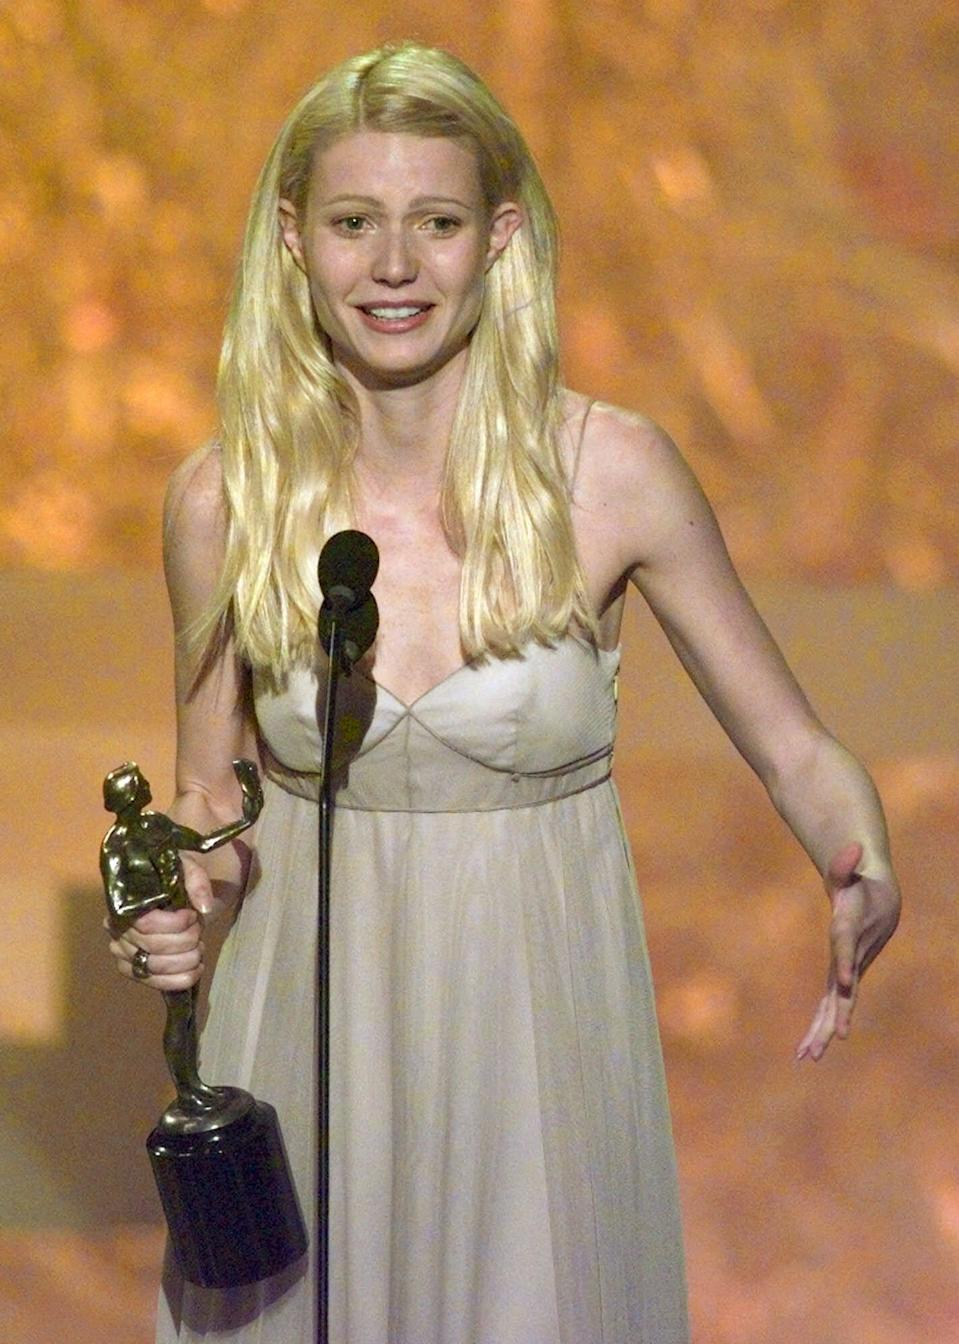 """Actress Gwyneth Paltrow accepts the award for """"Outstanding Performance by a Female Actor in a Leading Role"""" for her performance in """"Shakespeare in Love"""" during the Fifth Annual Screen Actors Guild Award show at the Shrine Auditorium in Los Angeles, Sunday, March 7, 1999. (AP Photo/ Michael Caufield)"""